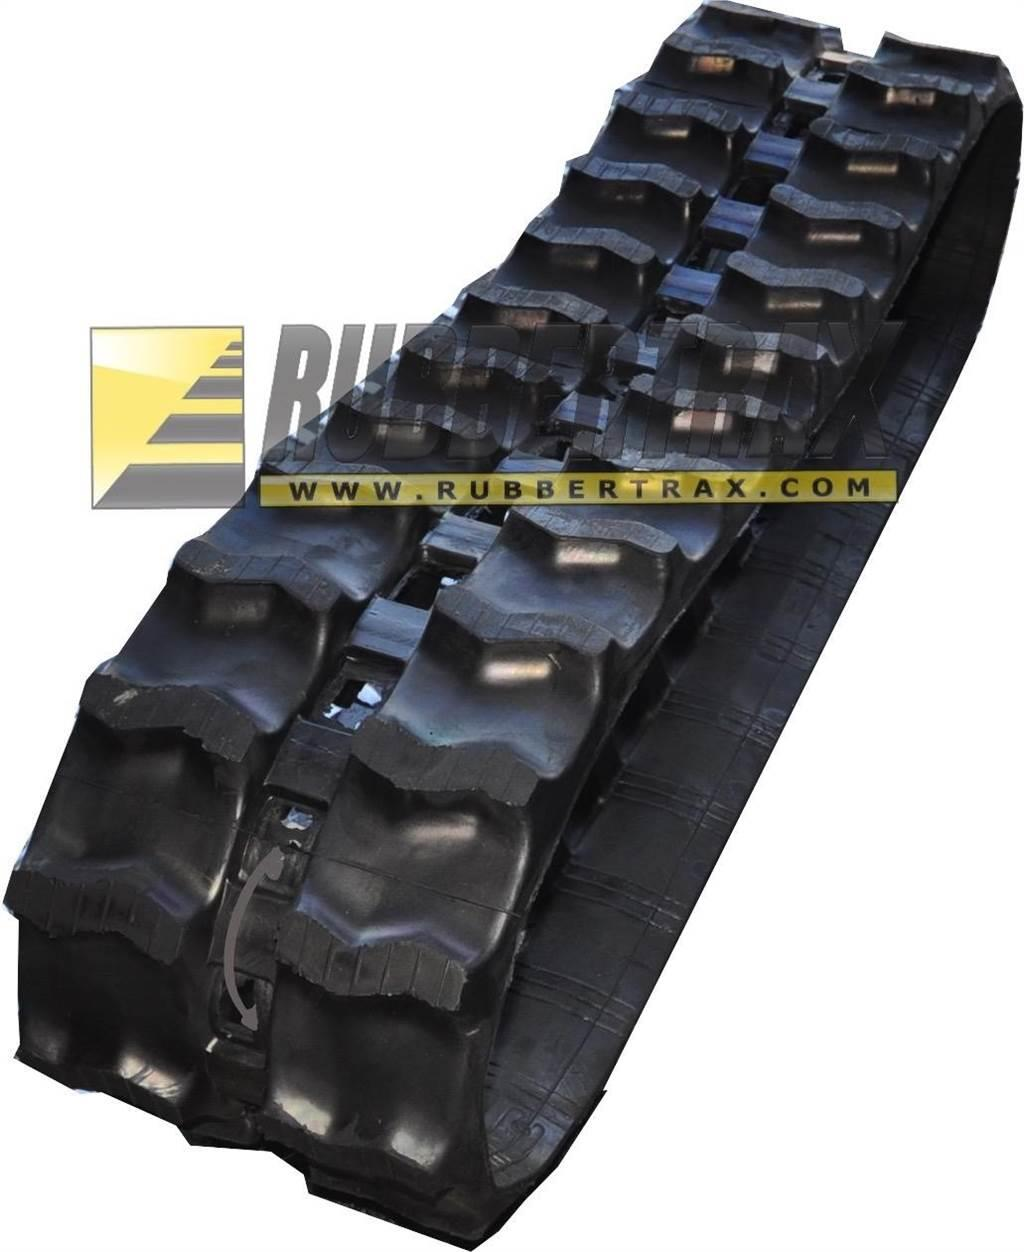 [Other] RUBBERTRAX 180x60x40